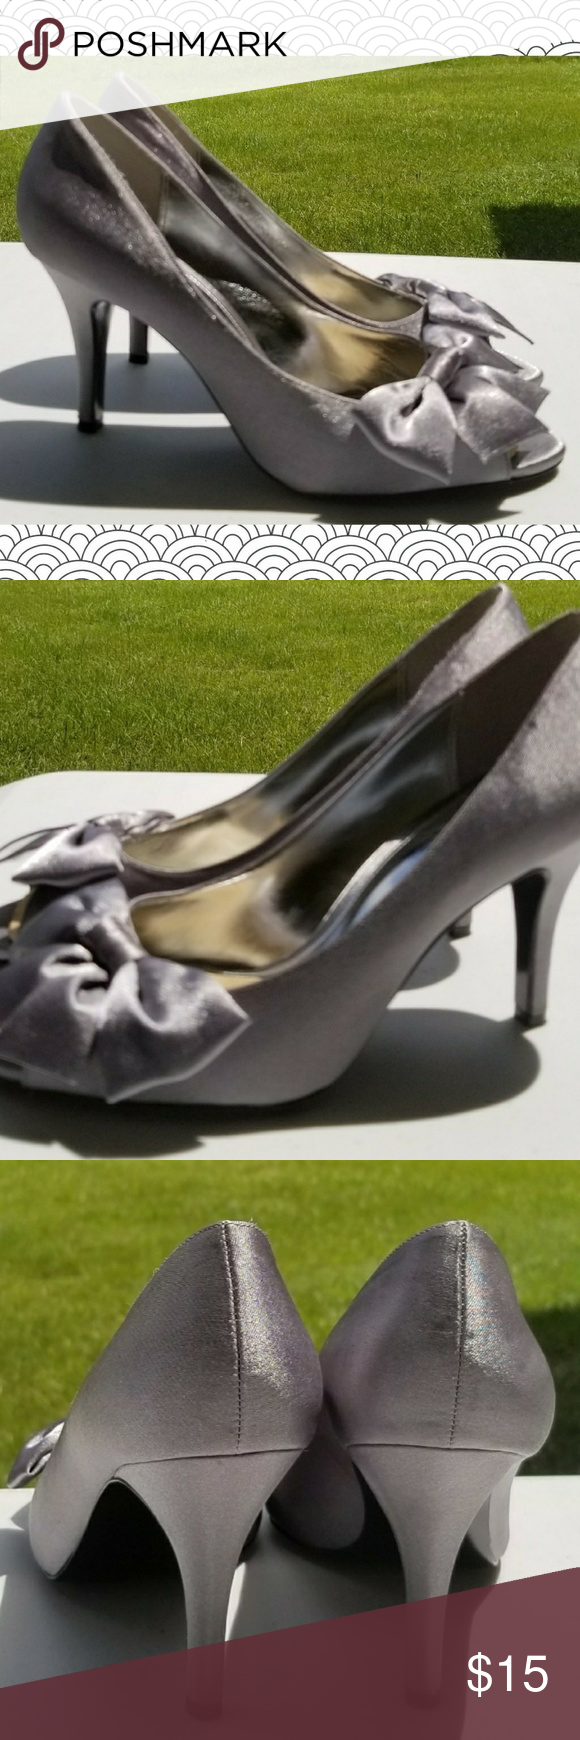 2baff16429 Touch of Nina Women s Shoes Silver Touch of Nina Peep Toe Pump with now  accent  size 8M  shoes are in good condition although the soles are  scratched from ...